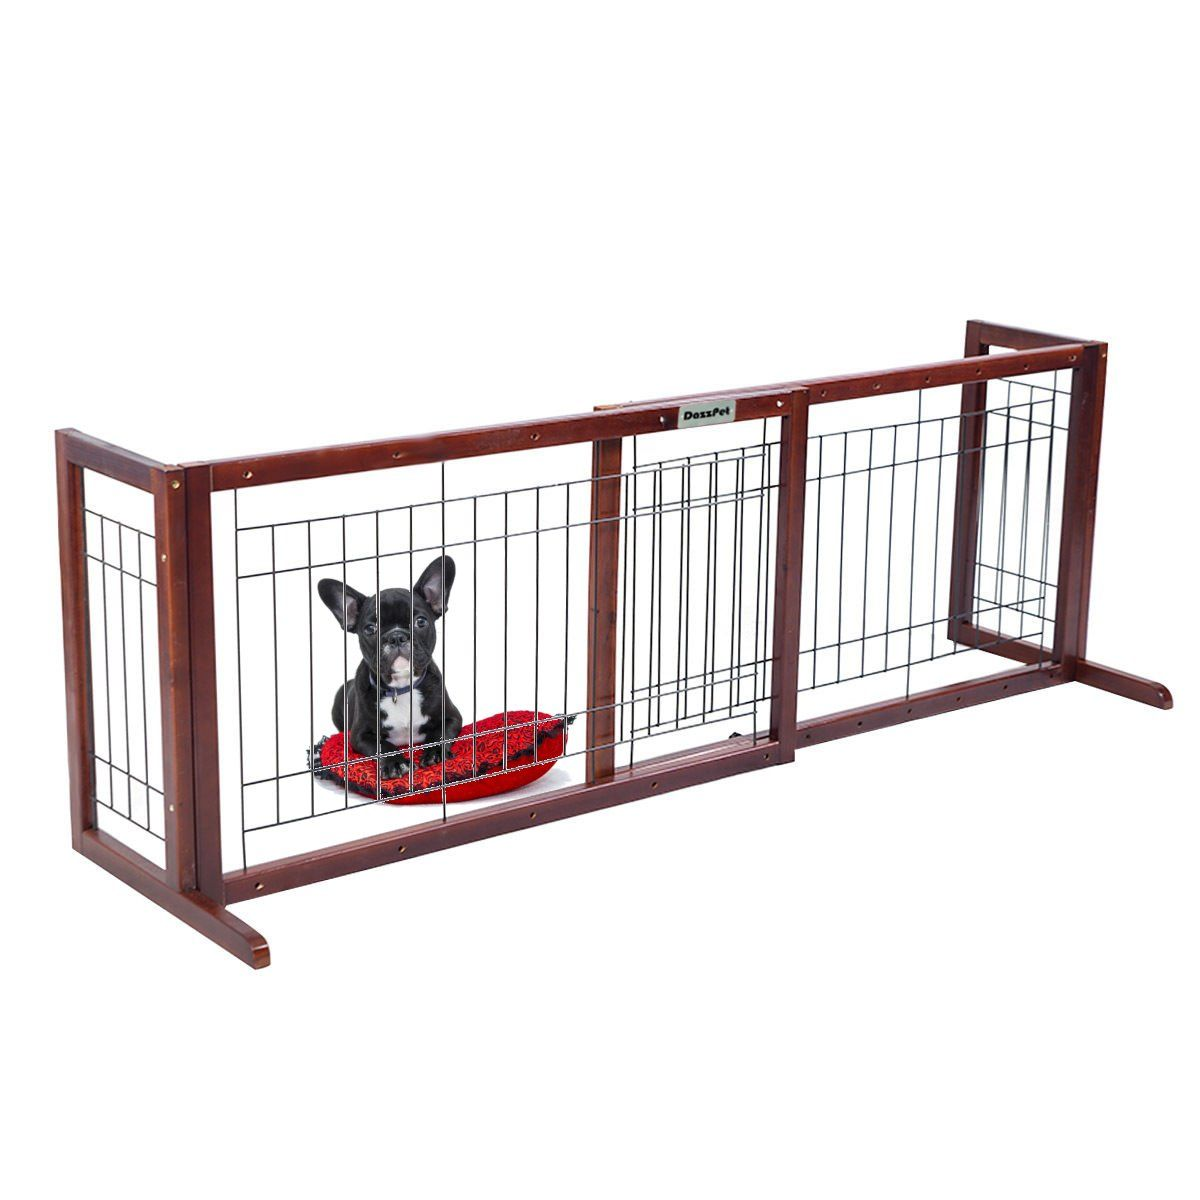 Dazzpet free standing pet gates extra wide indoor small